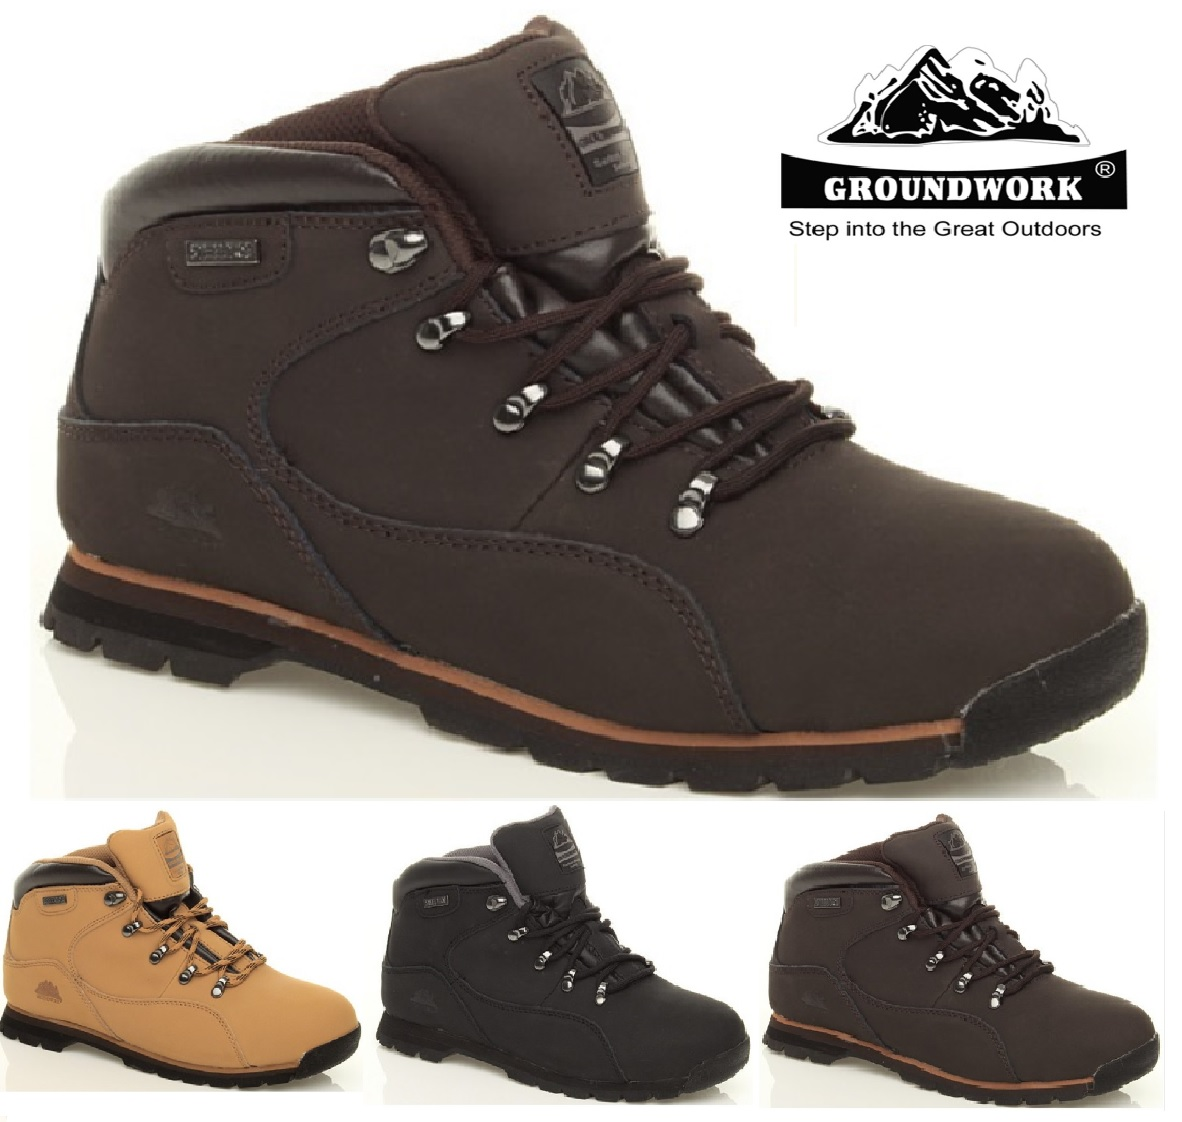 NEW MENS BOOTS SAFETY LEATHER WORK STEEL TOE CAP ANKLE BOOT TRAINERS SIZE 7-11